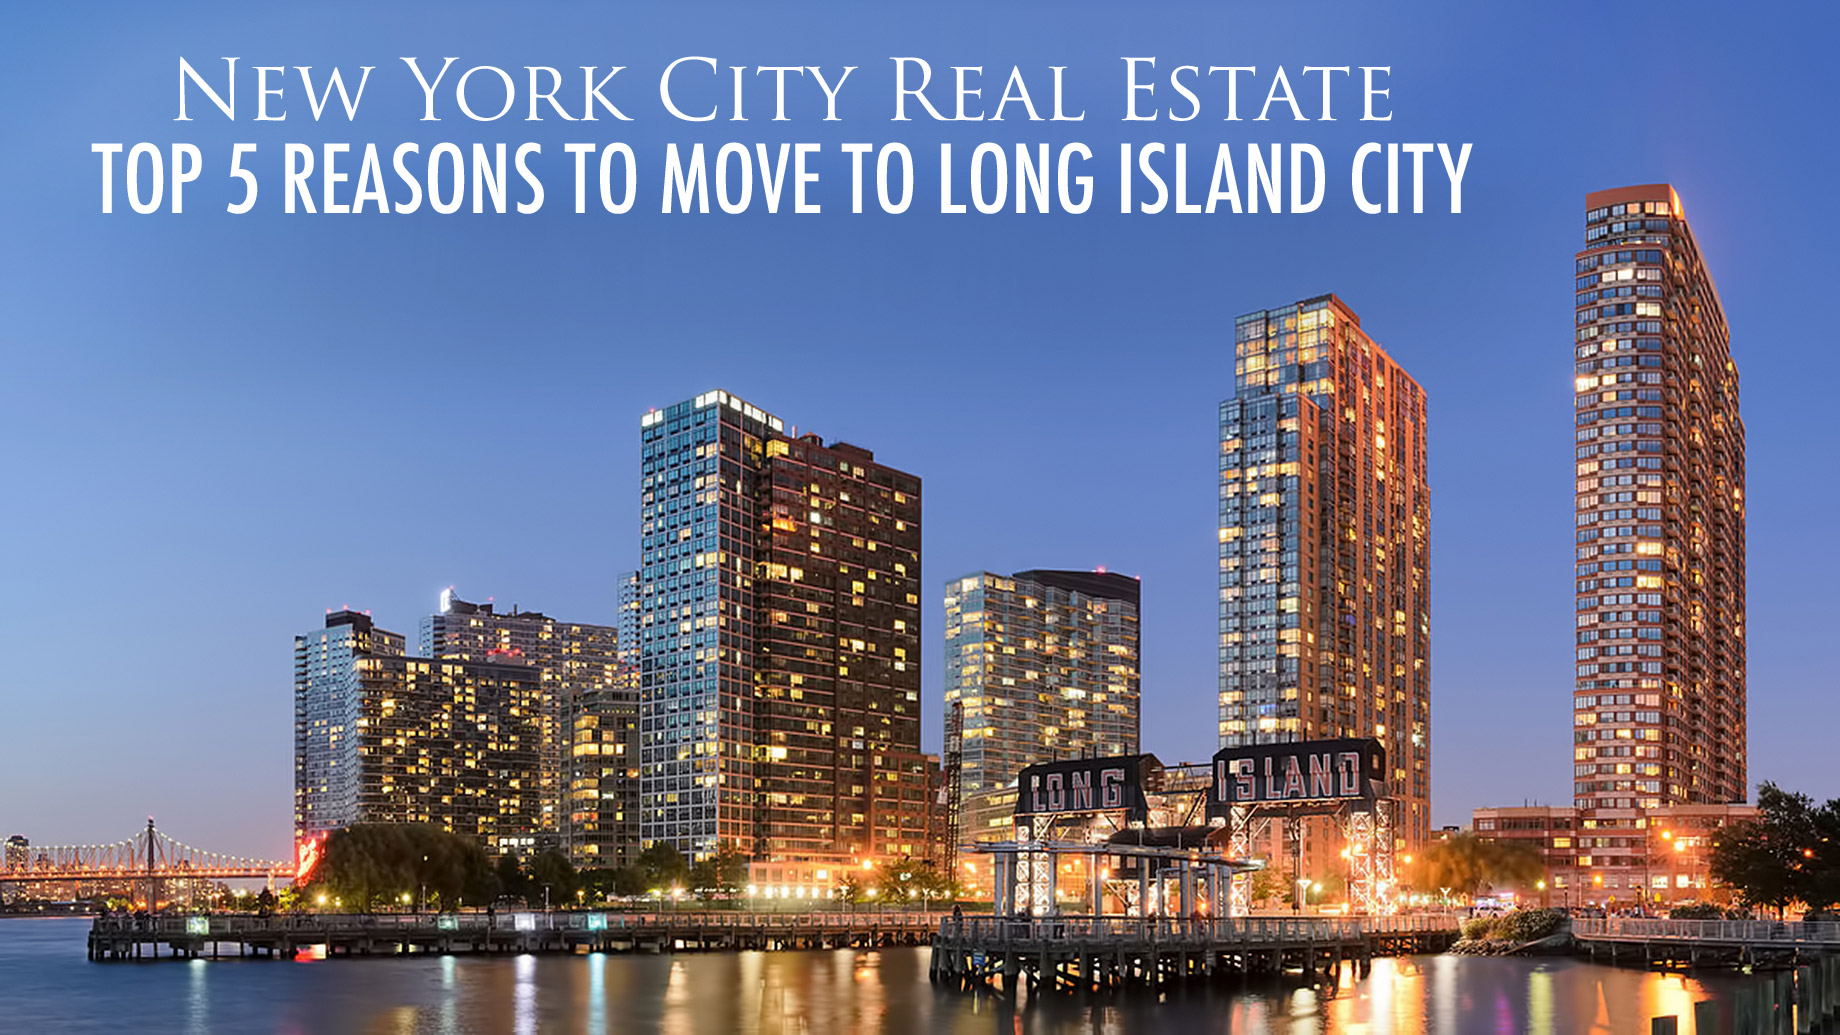 New York City Real Estate - Top 5 Reasons to Move to Long Island City